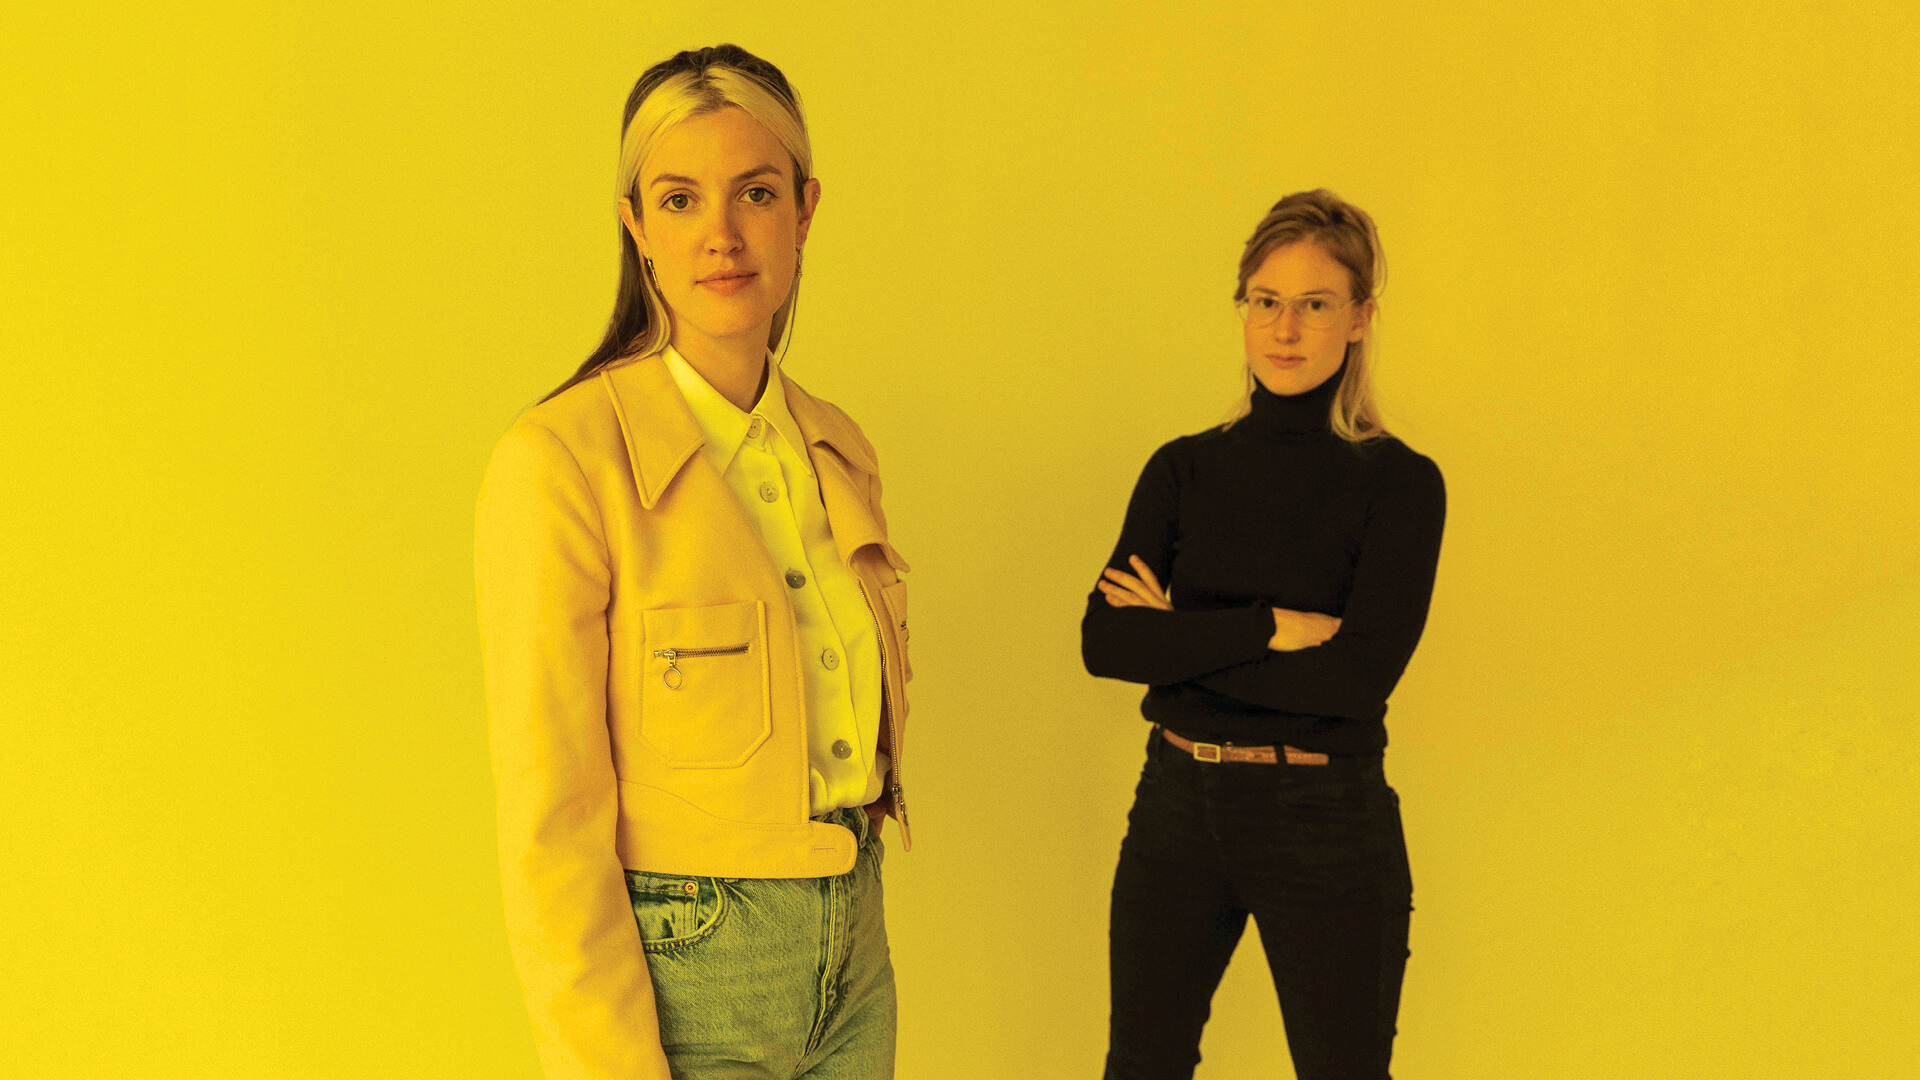 Johanna Rietveld and Anika Schroter of Art/Switch talk about waste and art